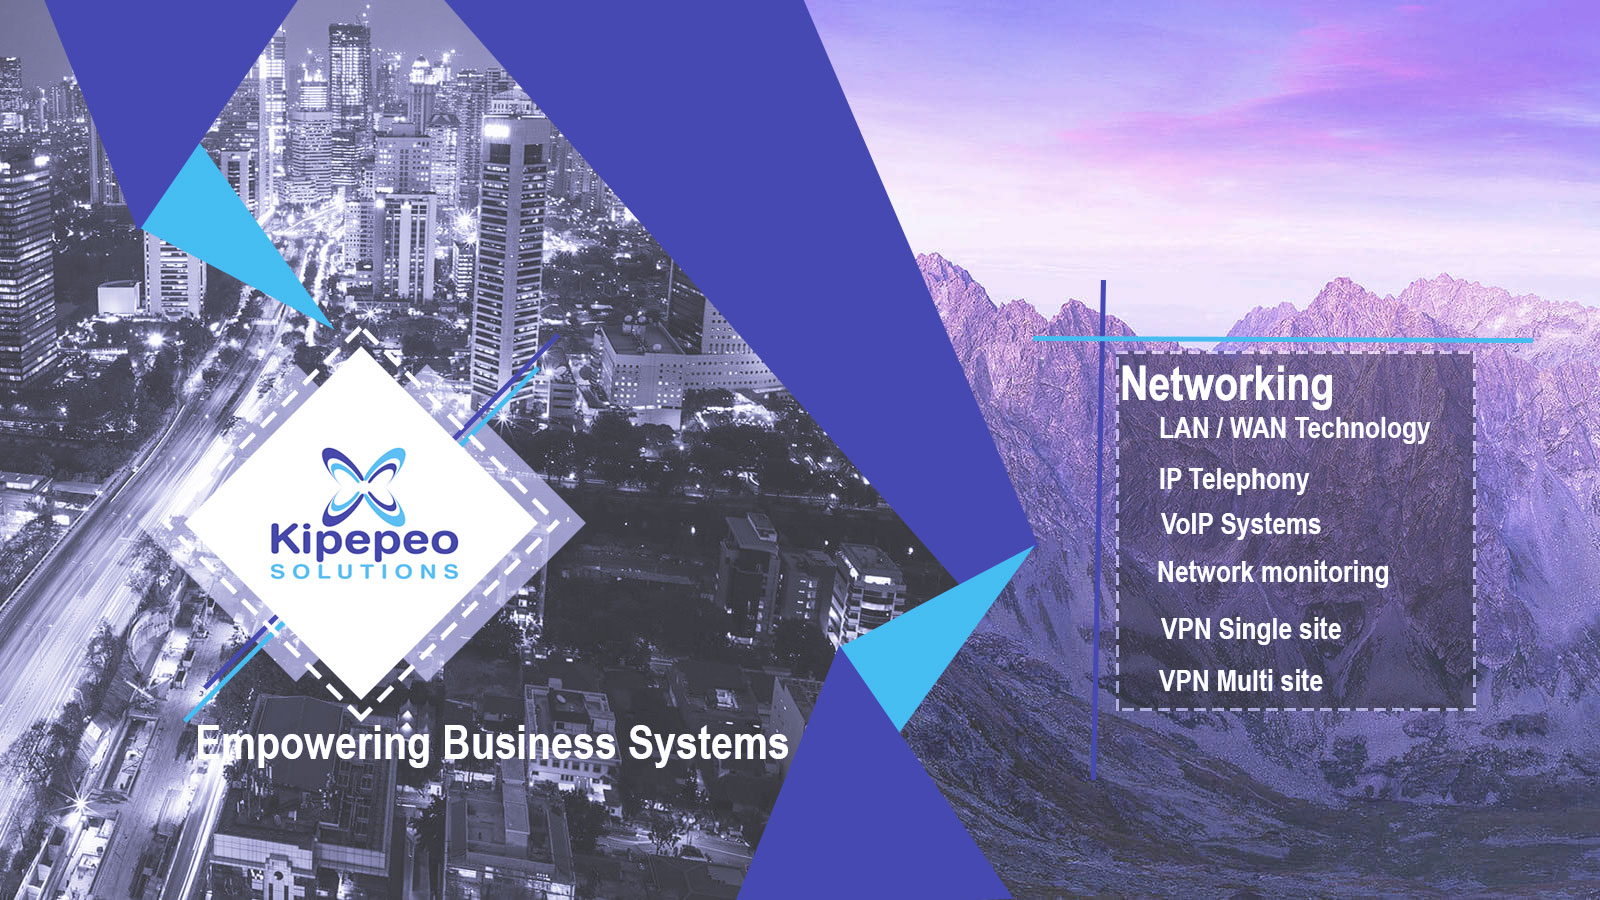 Kipepeo Solutions Networking